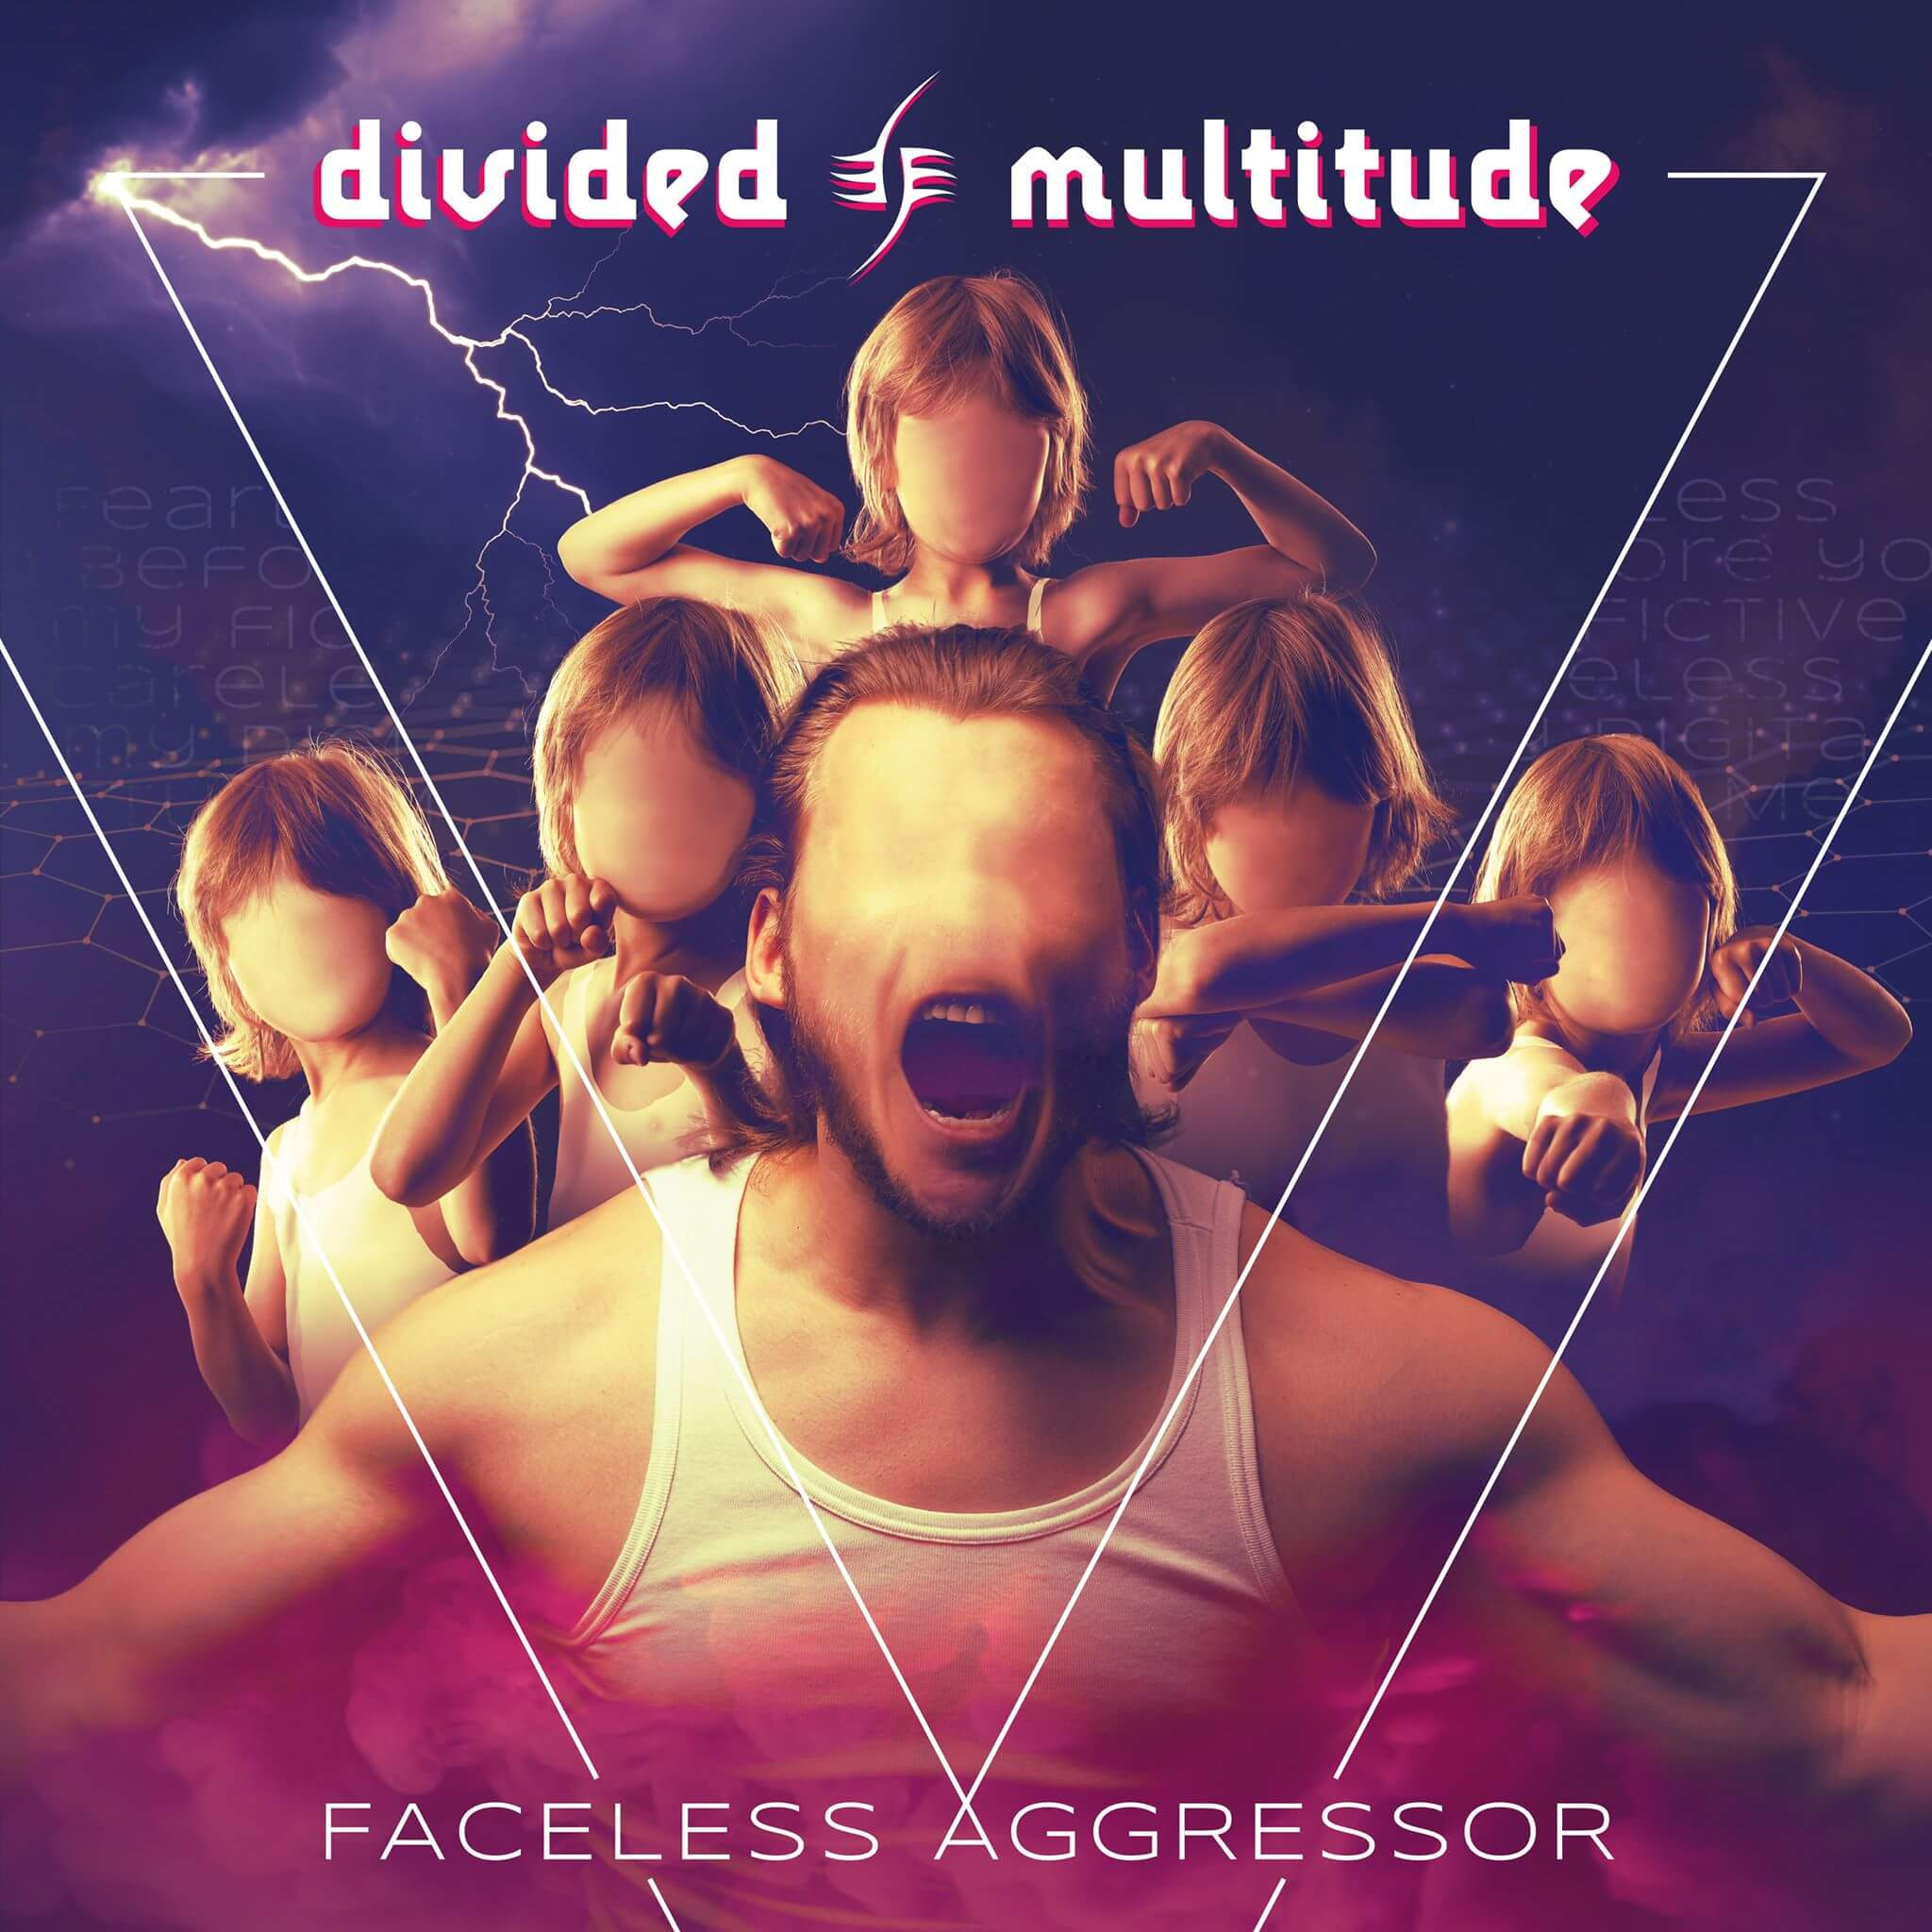 DIVIDED MULTITUDE unveil cover artwork and tracklist of upcoming album!